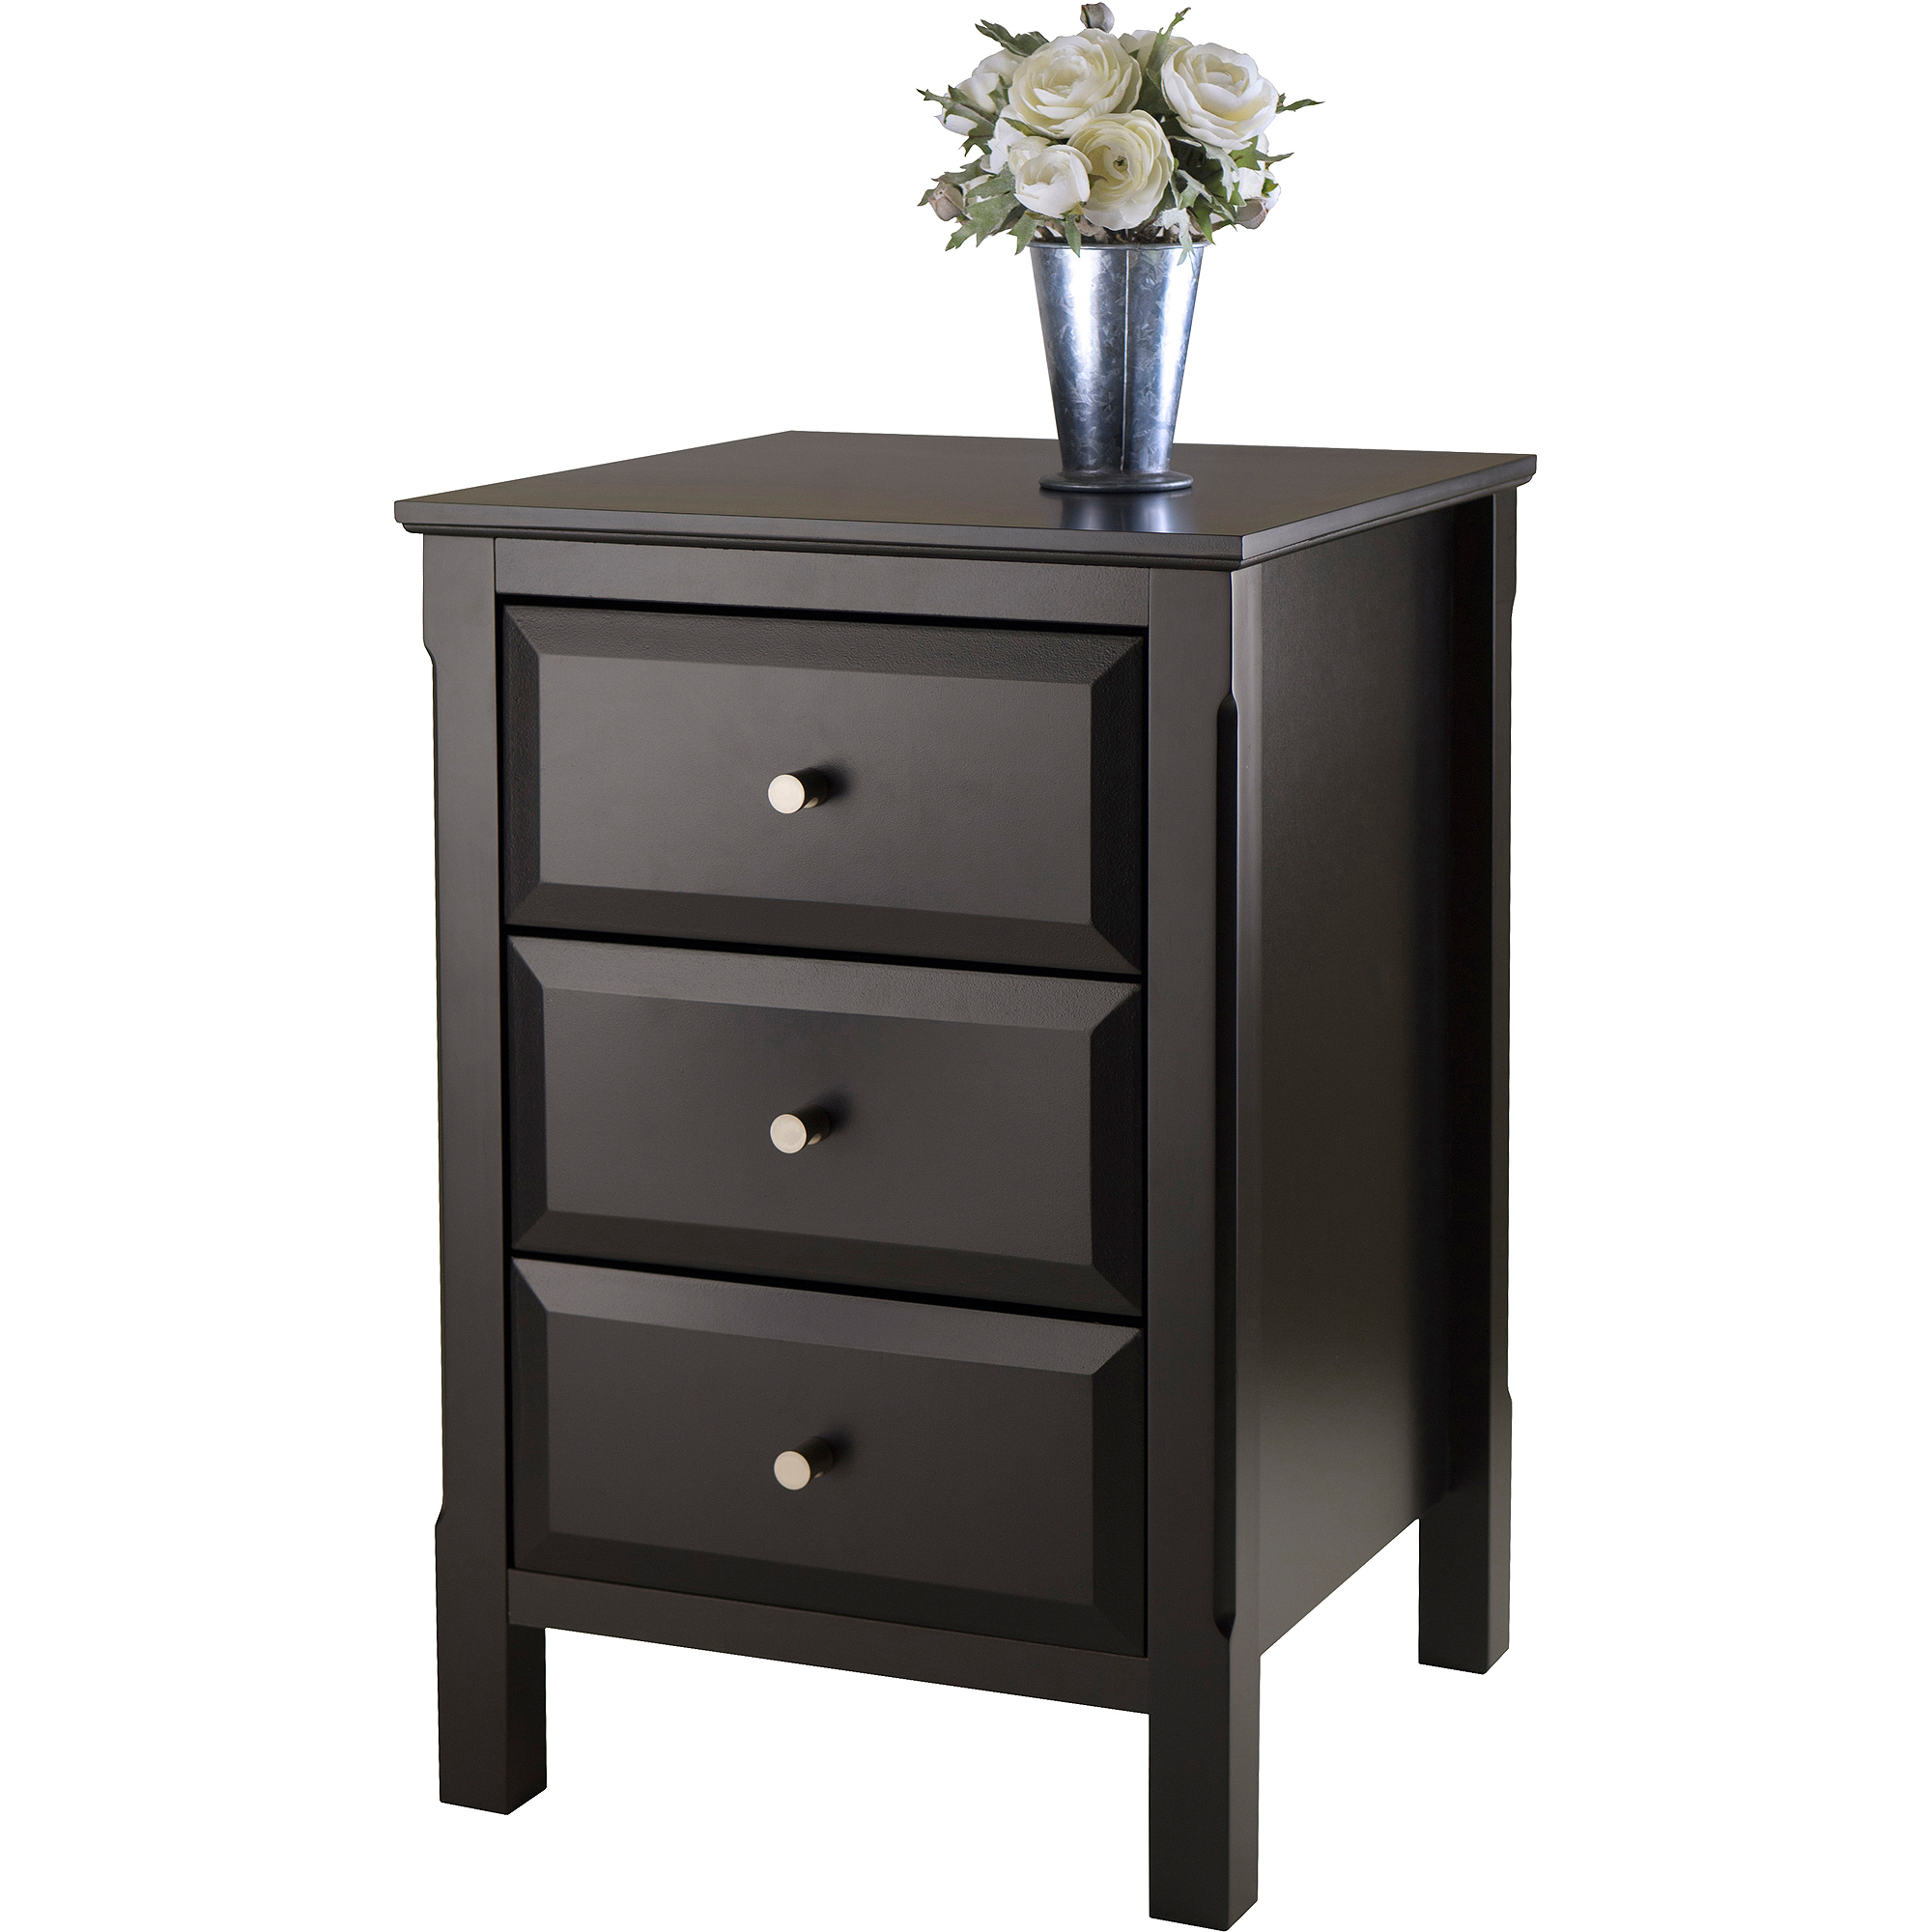 winsome timmy nightstand accent table black room essentials metal patio verizon free tablet clear lucite desk wade furniture mosaic tile outdoor side rechargeable battery powered